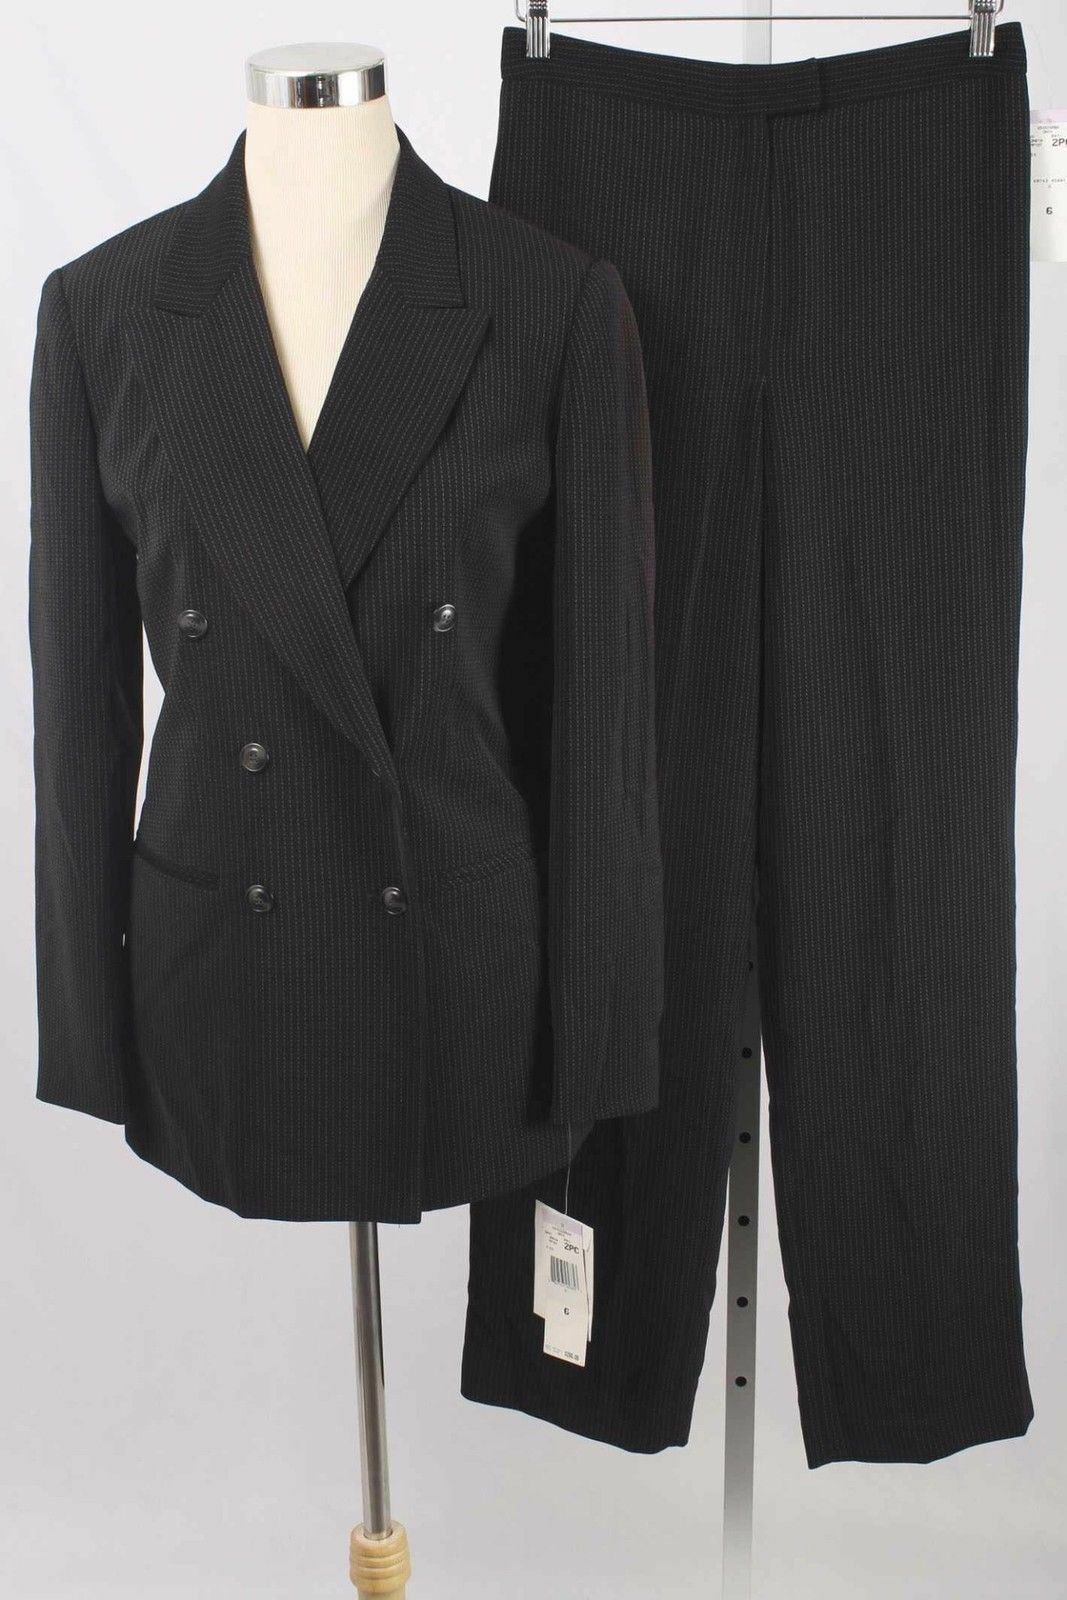 Jones New York Size 6 Onyx Dashed Pin Stripe Blazer & Pant Suit NWT 202 L217